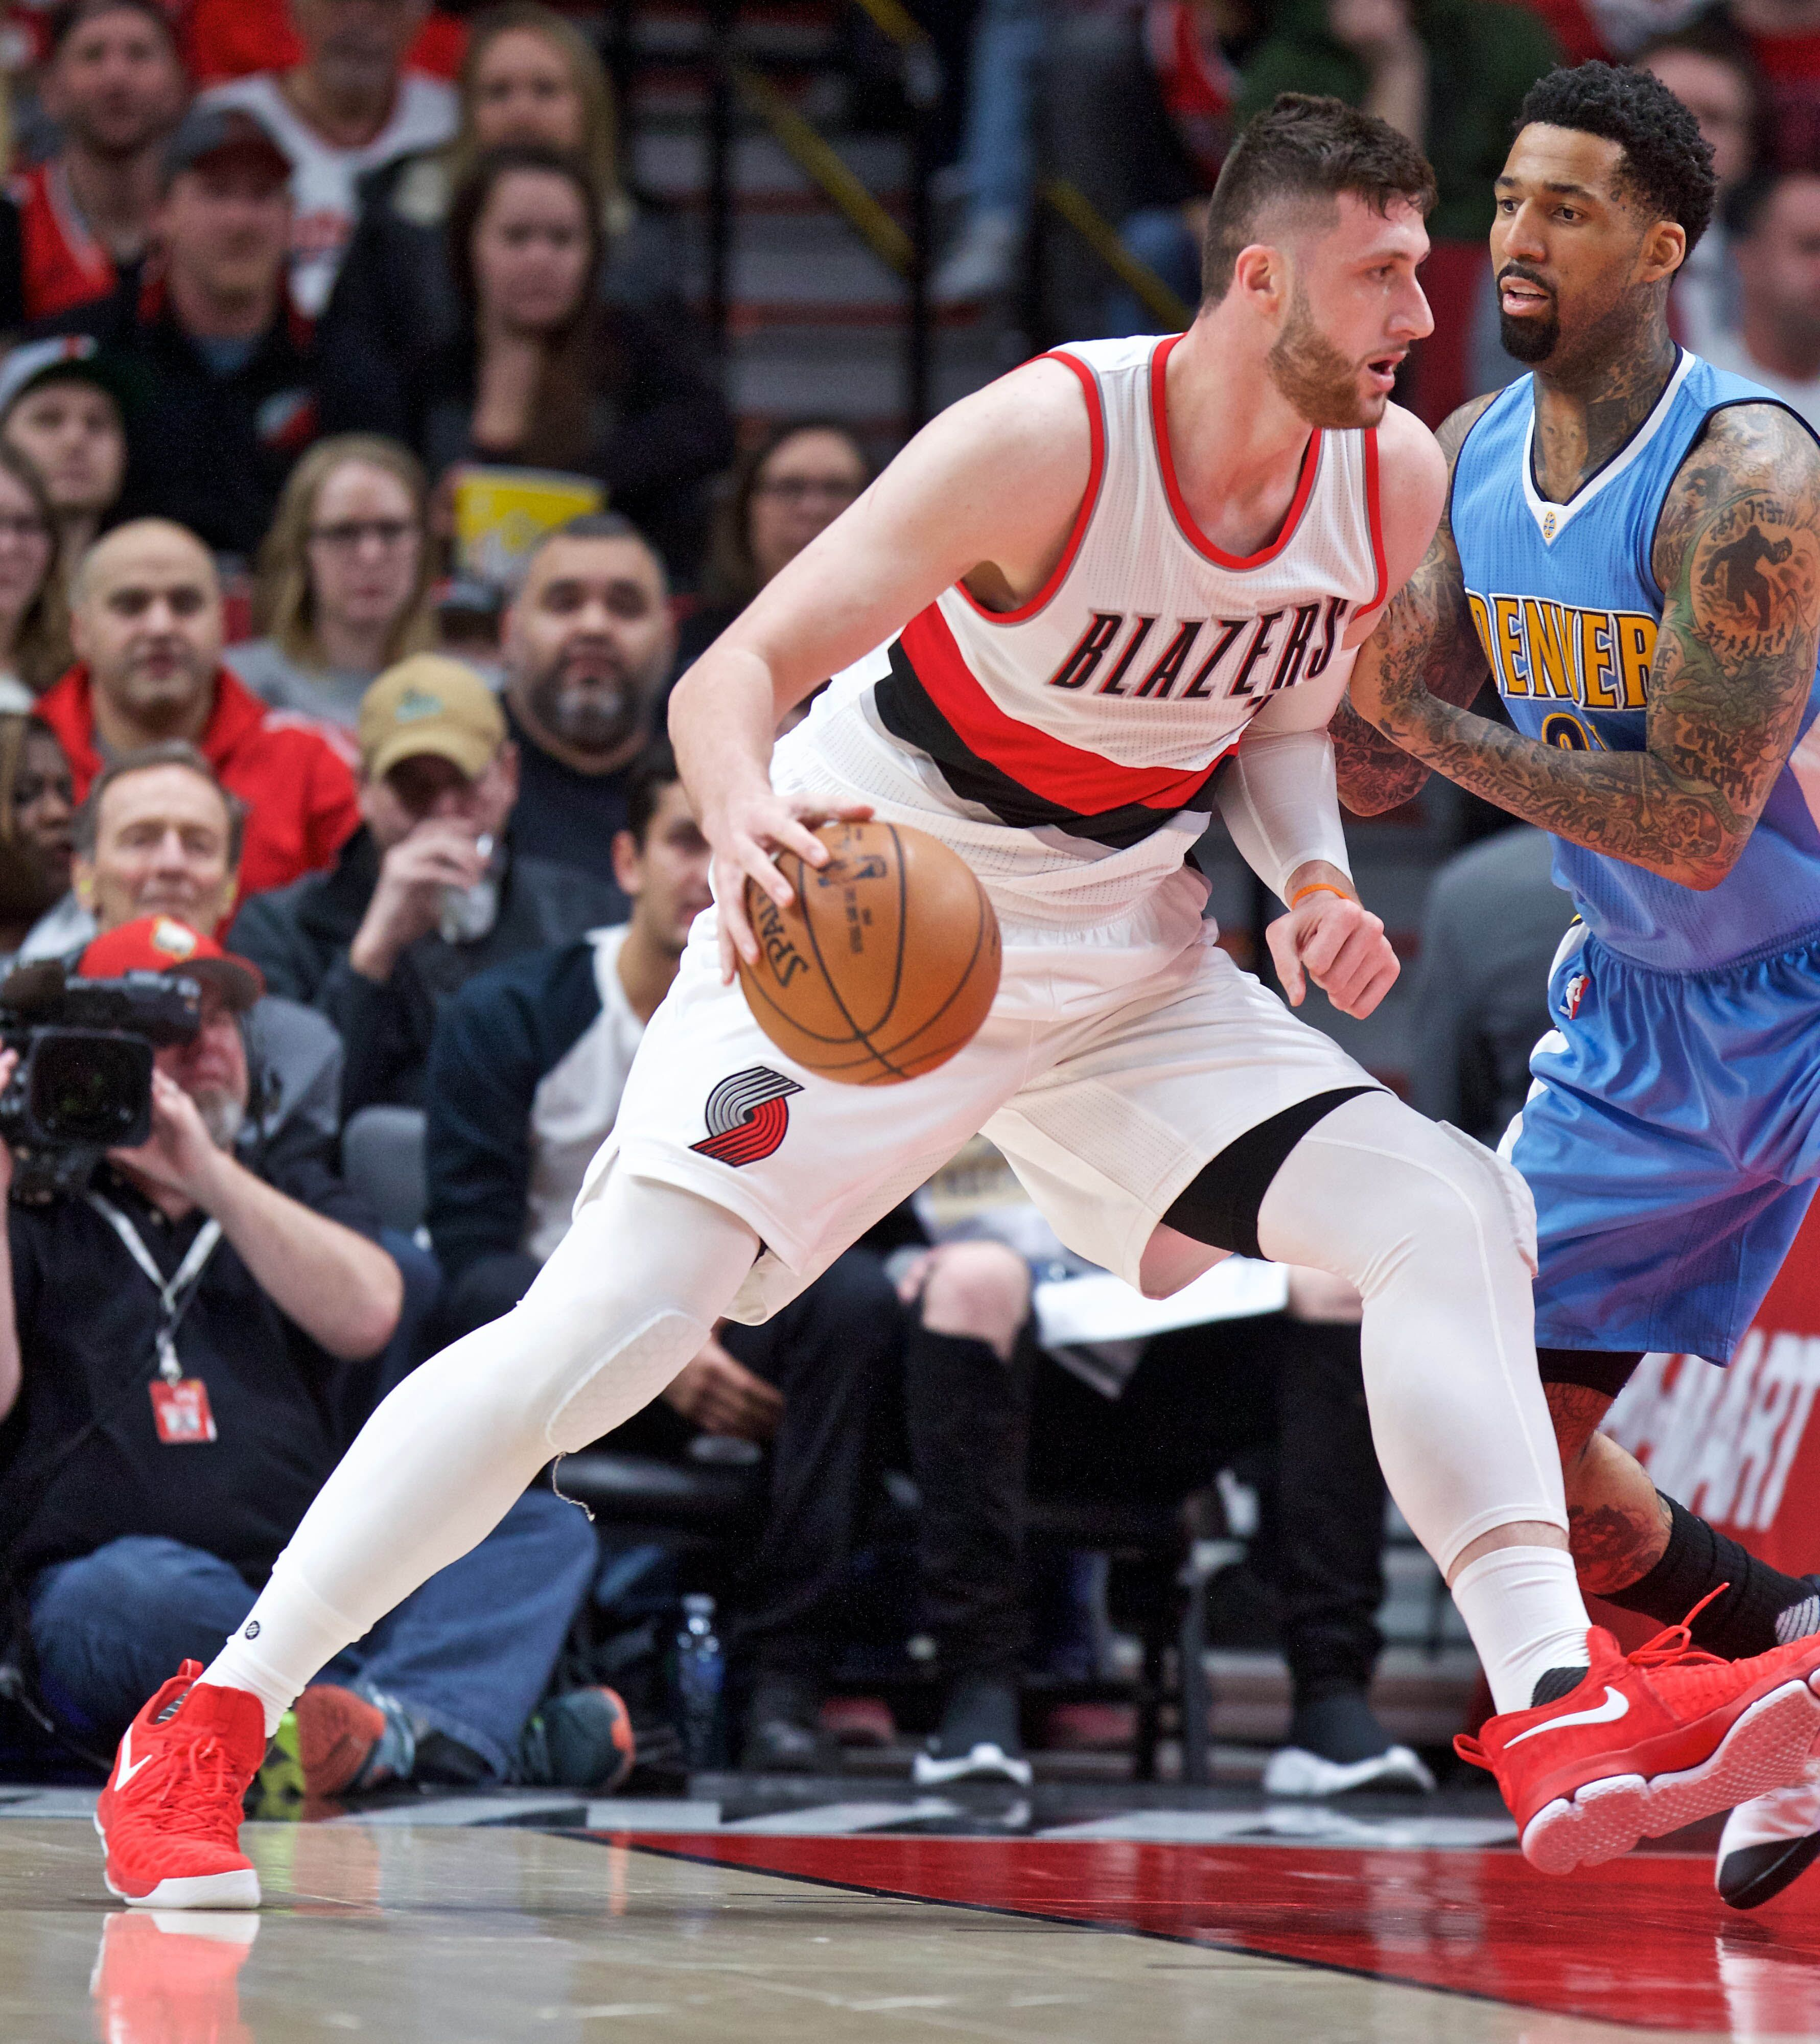 BREAKING: Jusuf Nurkic Suffers Fibular Fracture, Out At